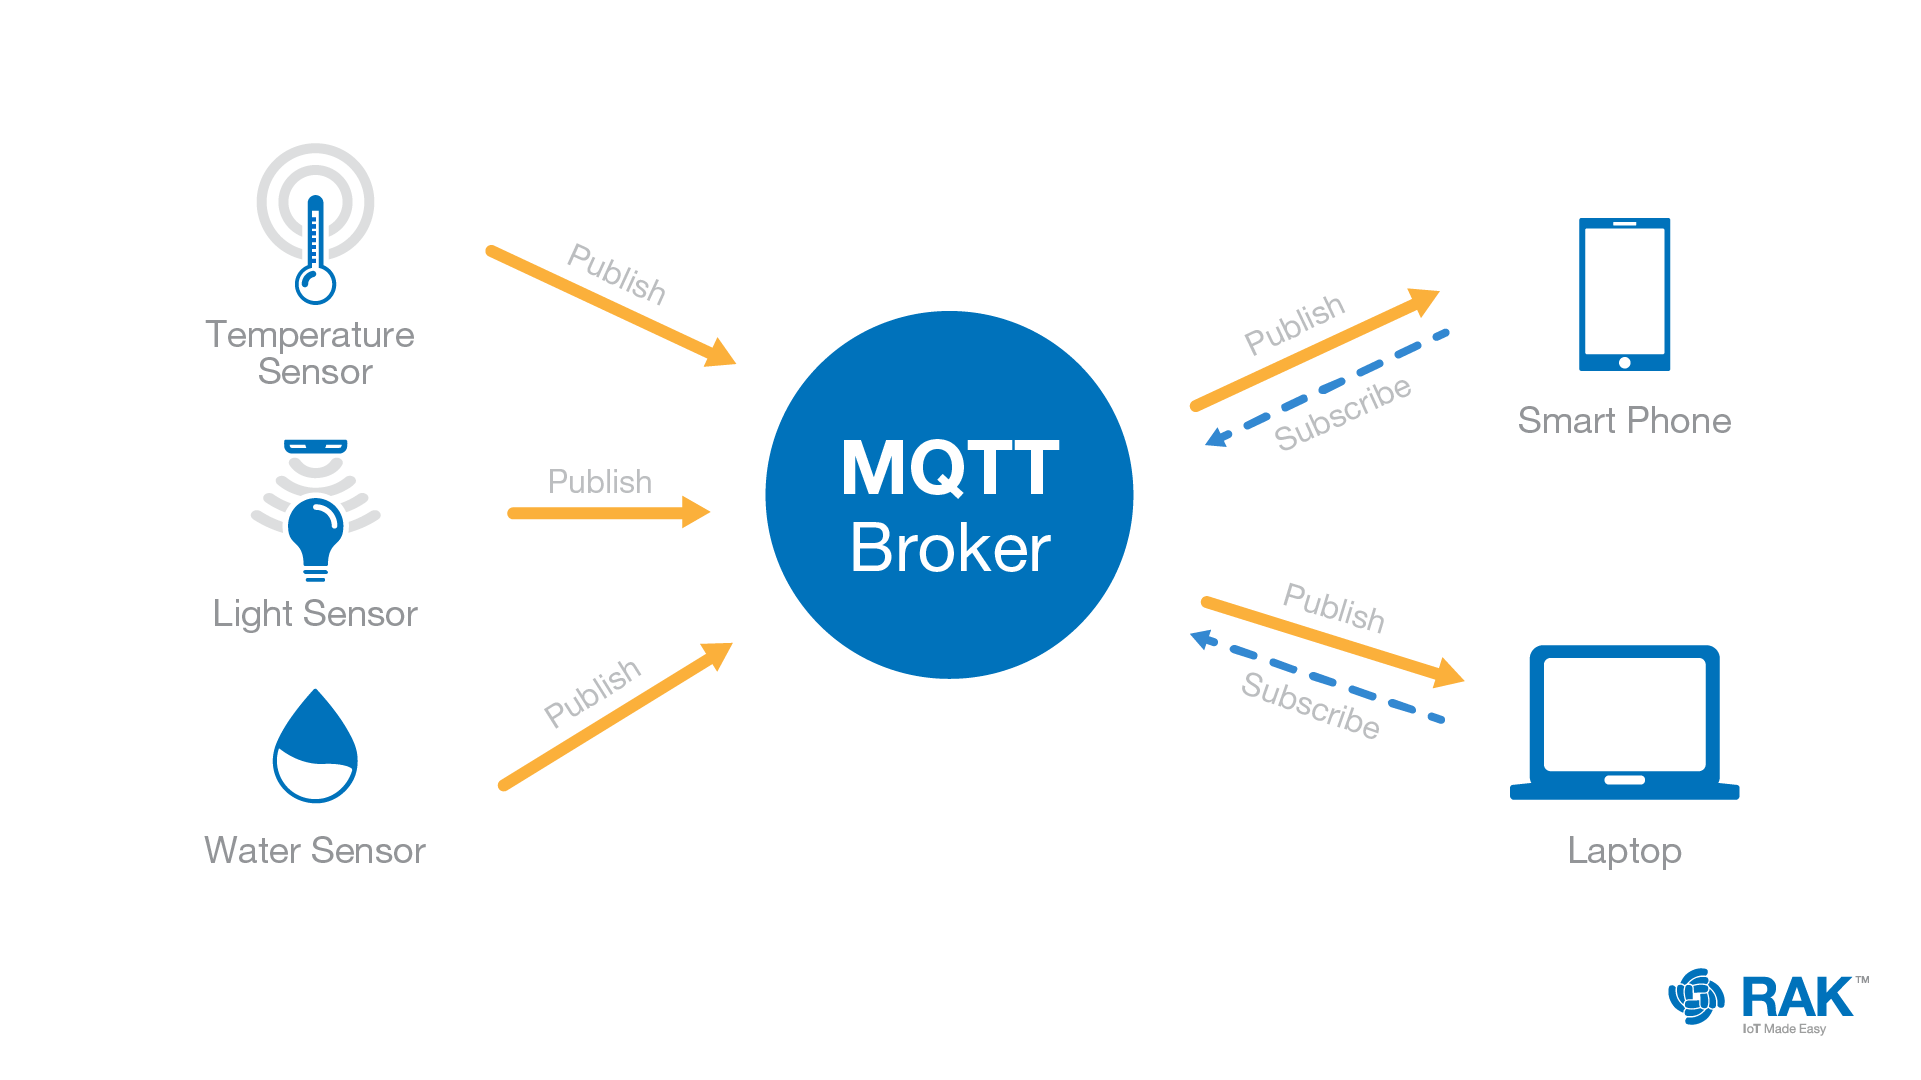 MQTT M2M Connectivity Protocol